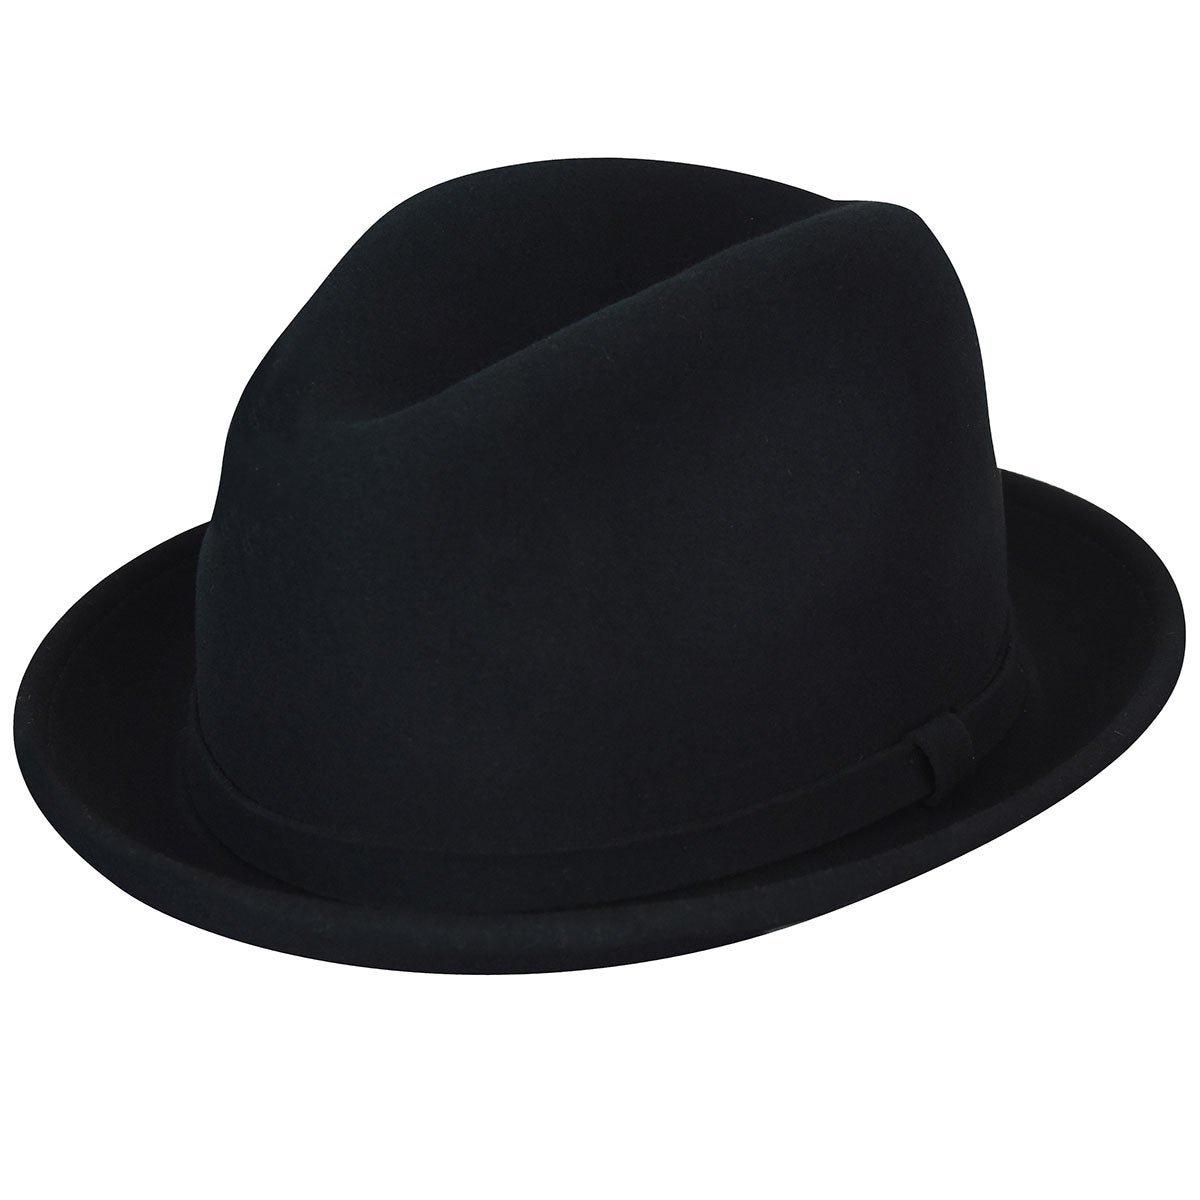 1960s – 70s Style Men's Hats Litefelt Charlie Stingy Brim Fedora $60.00 AT vintagedancer.com